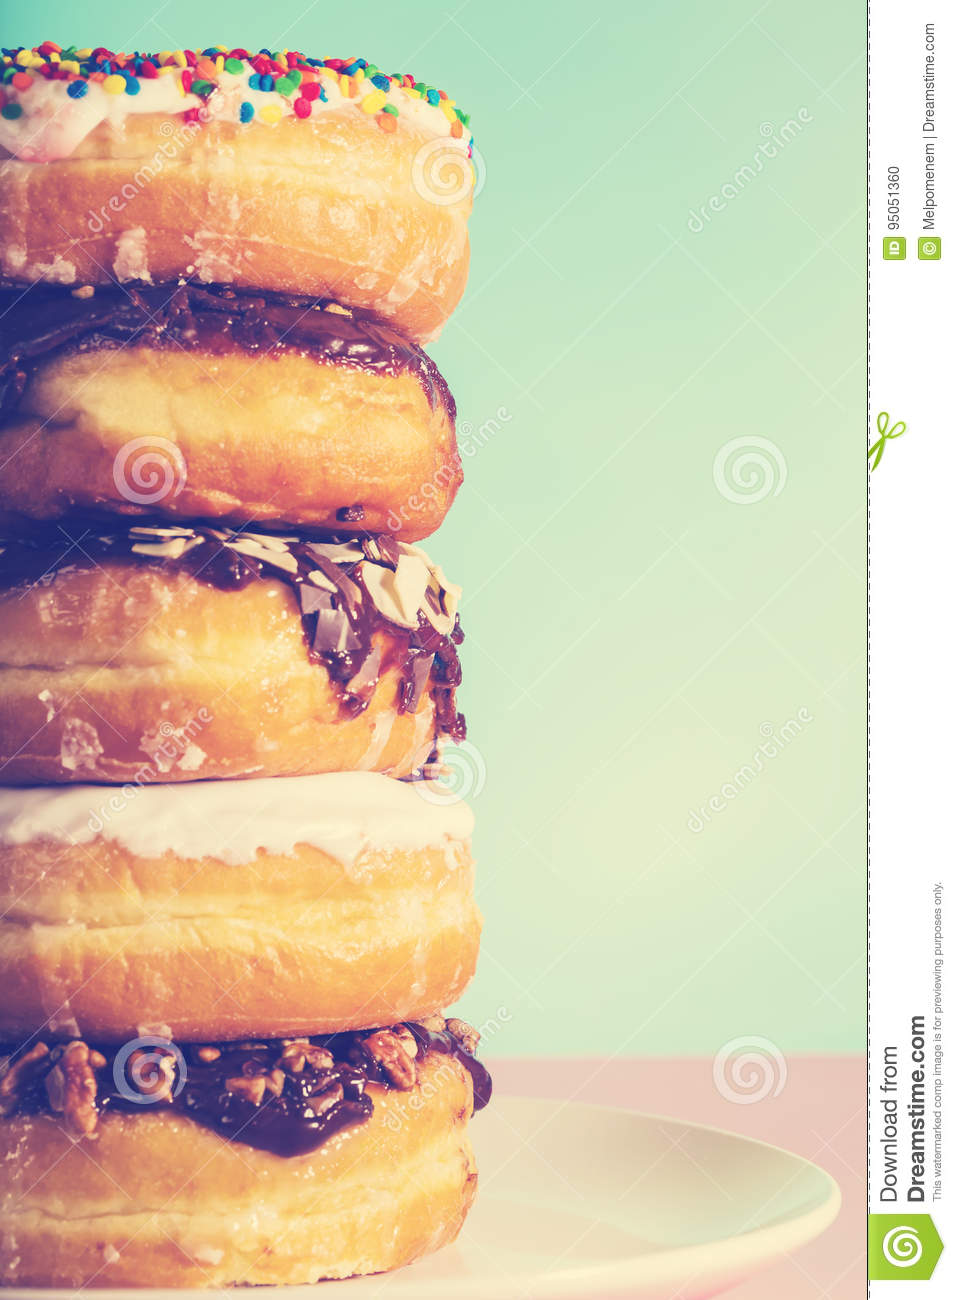 Stack of assorted donuts on pastel blue and pink background